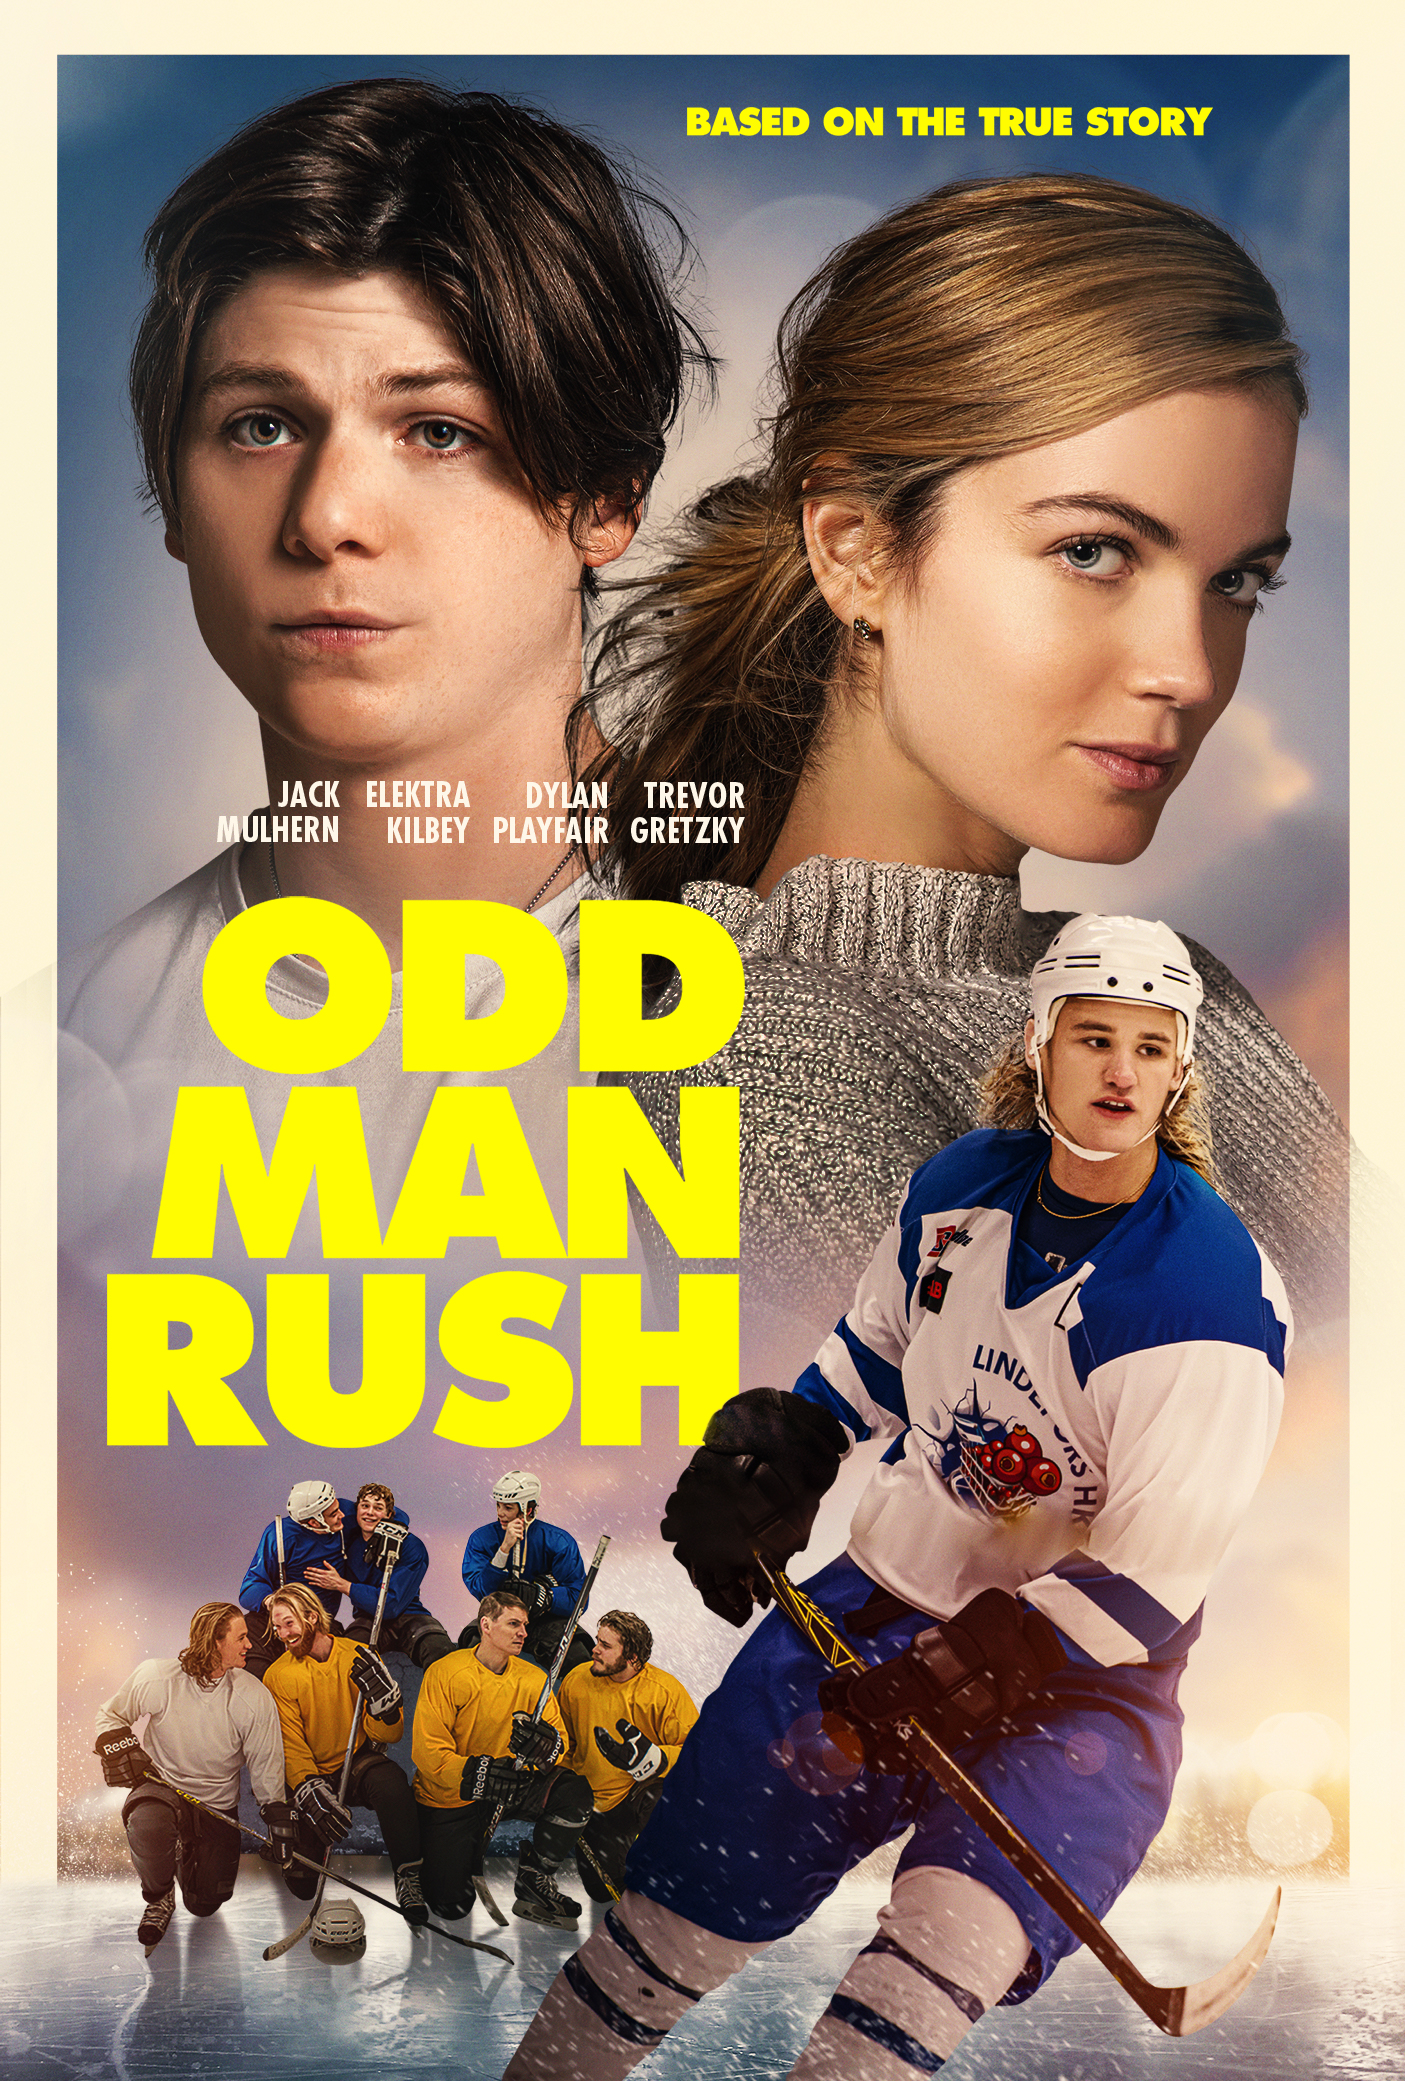 Odd Man Rush hd on soap2day